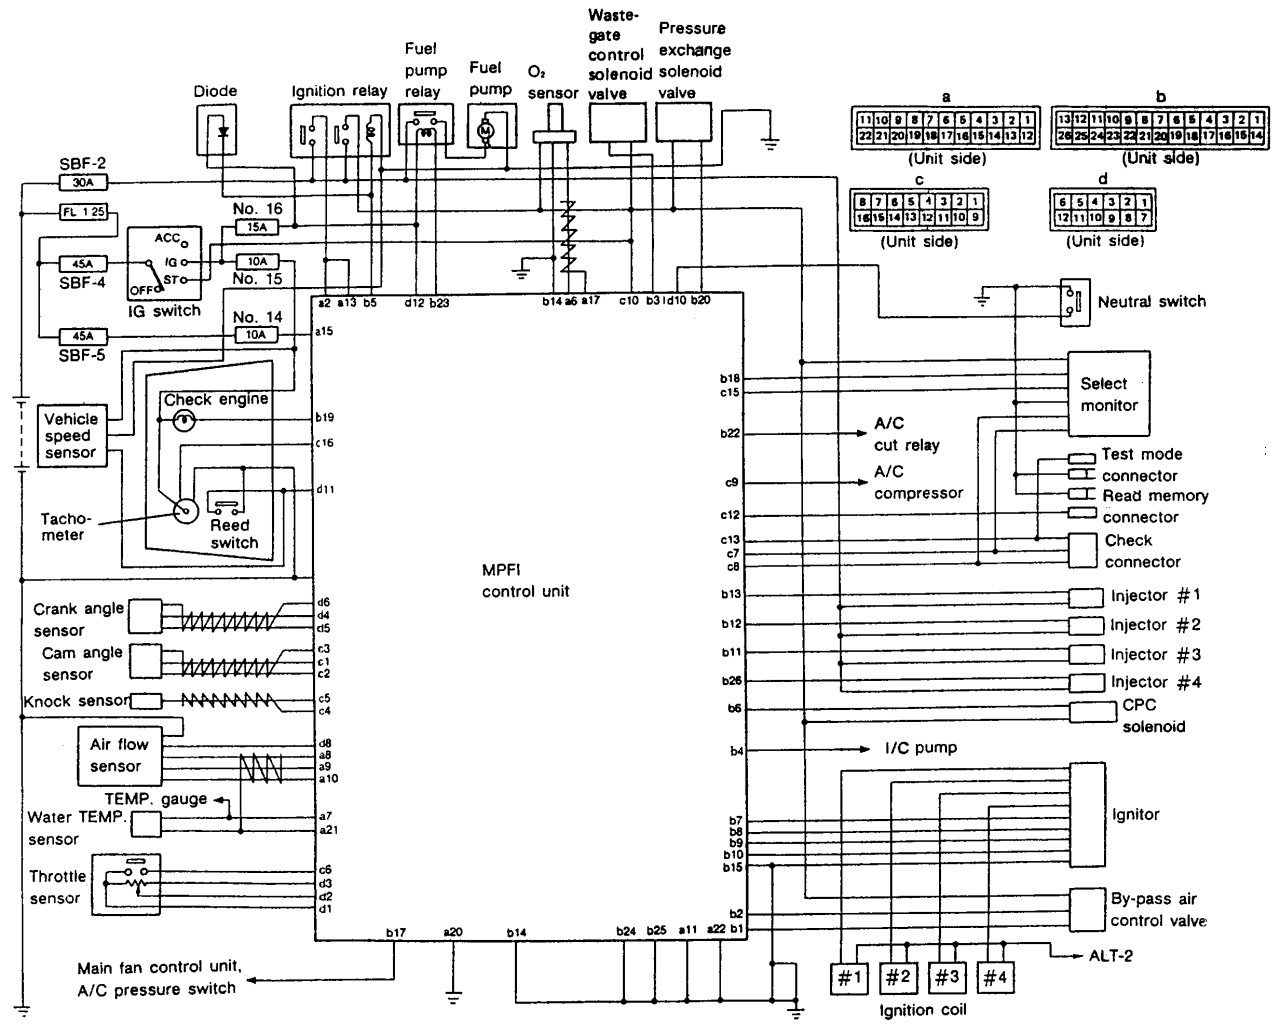 2001 jeep liberty wiring diagram - wiring diagram system faith-image-a -  faith-image-a.ediliadesign.it  ediliadesign.it